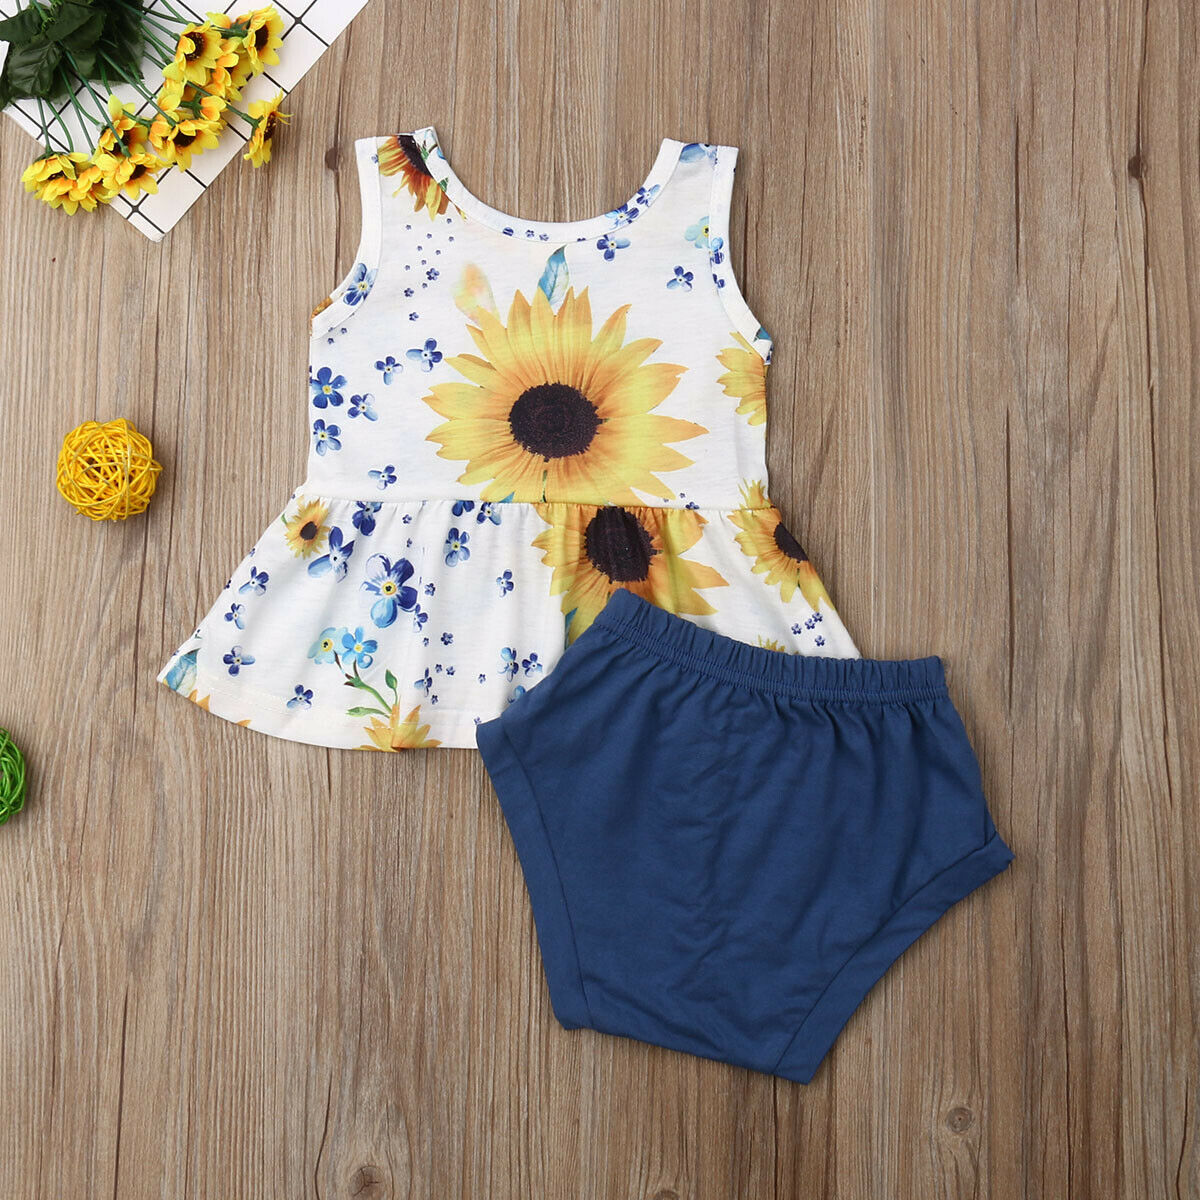 370ceca94 New Infant Kids Baby Girl Sunflower Tops +Shorts Pants Set Summer Newborn  Kids Clothes Outfits-in Clothing Sets from Mother & Kids on Aliexpress.com  ...